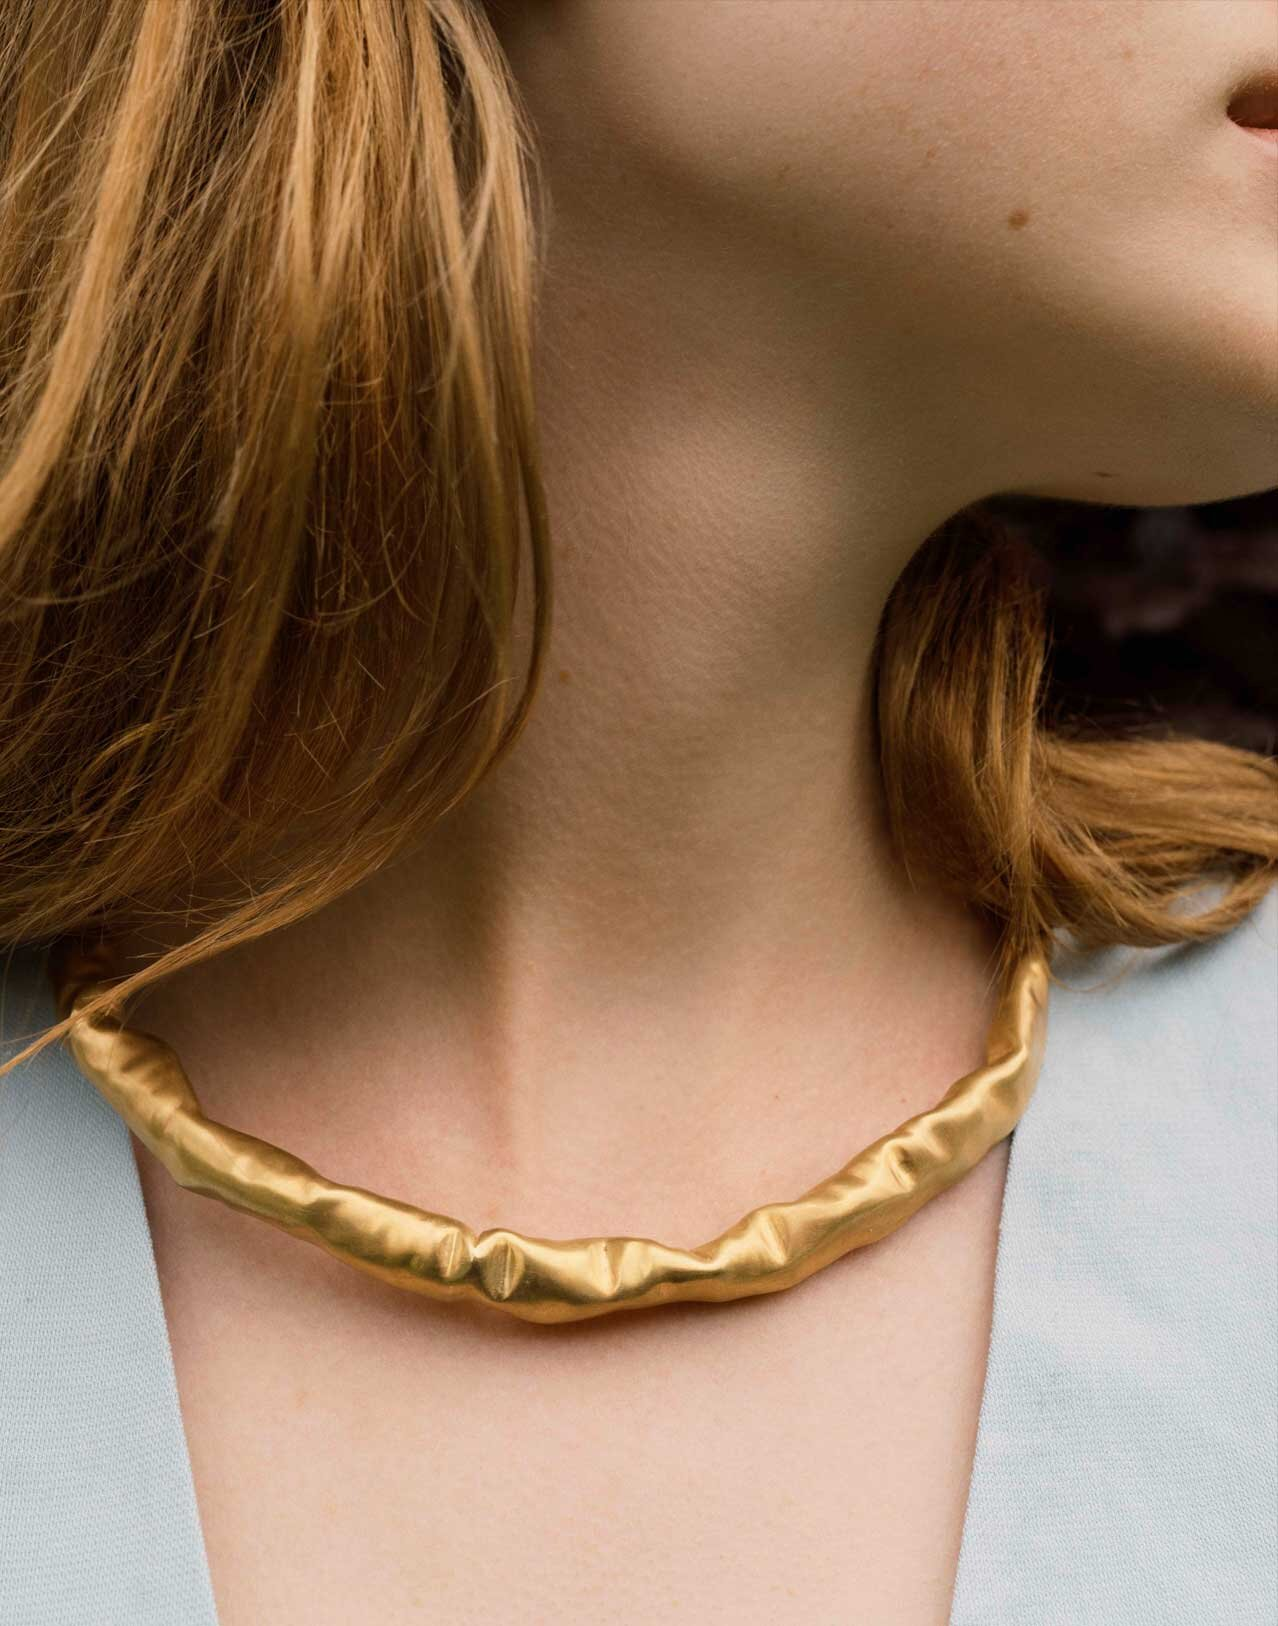 Completedworks-Gold-Vermeil-Collar-The-Accelerating-Expansion-of-the-Universe-10.jpg